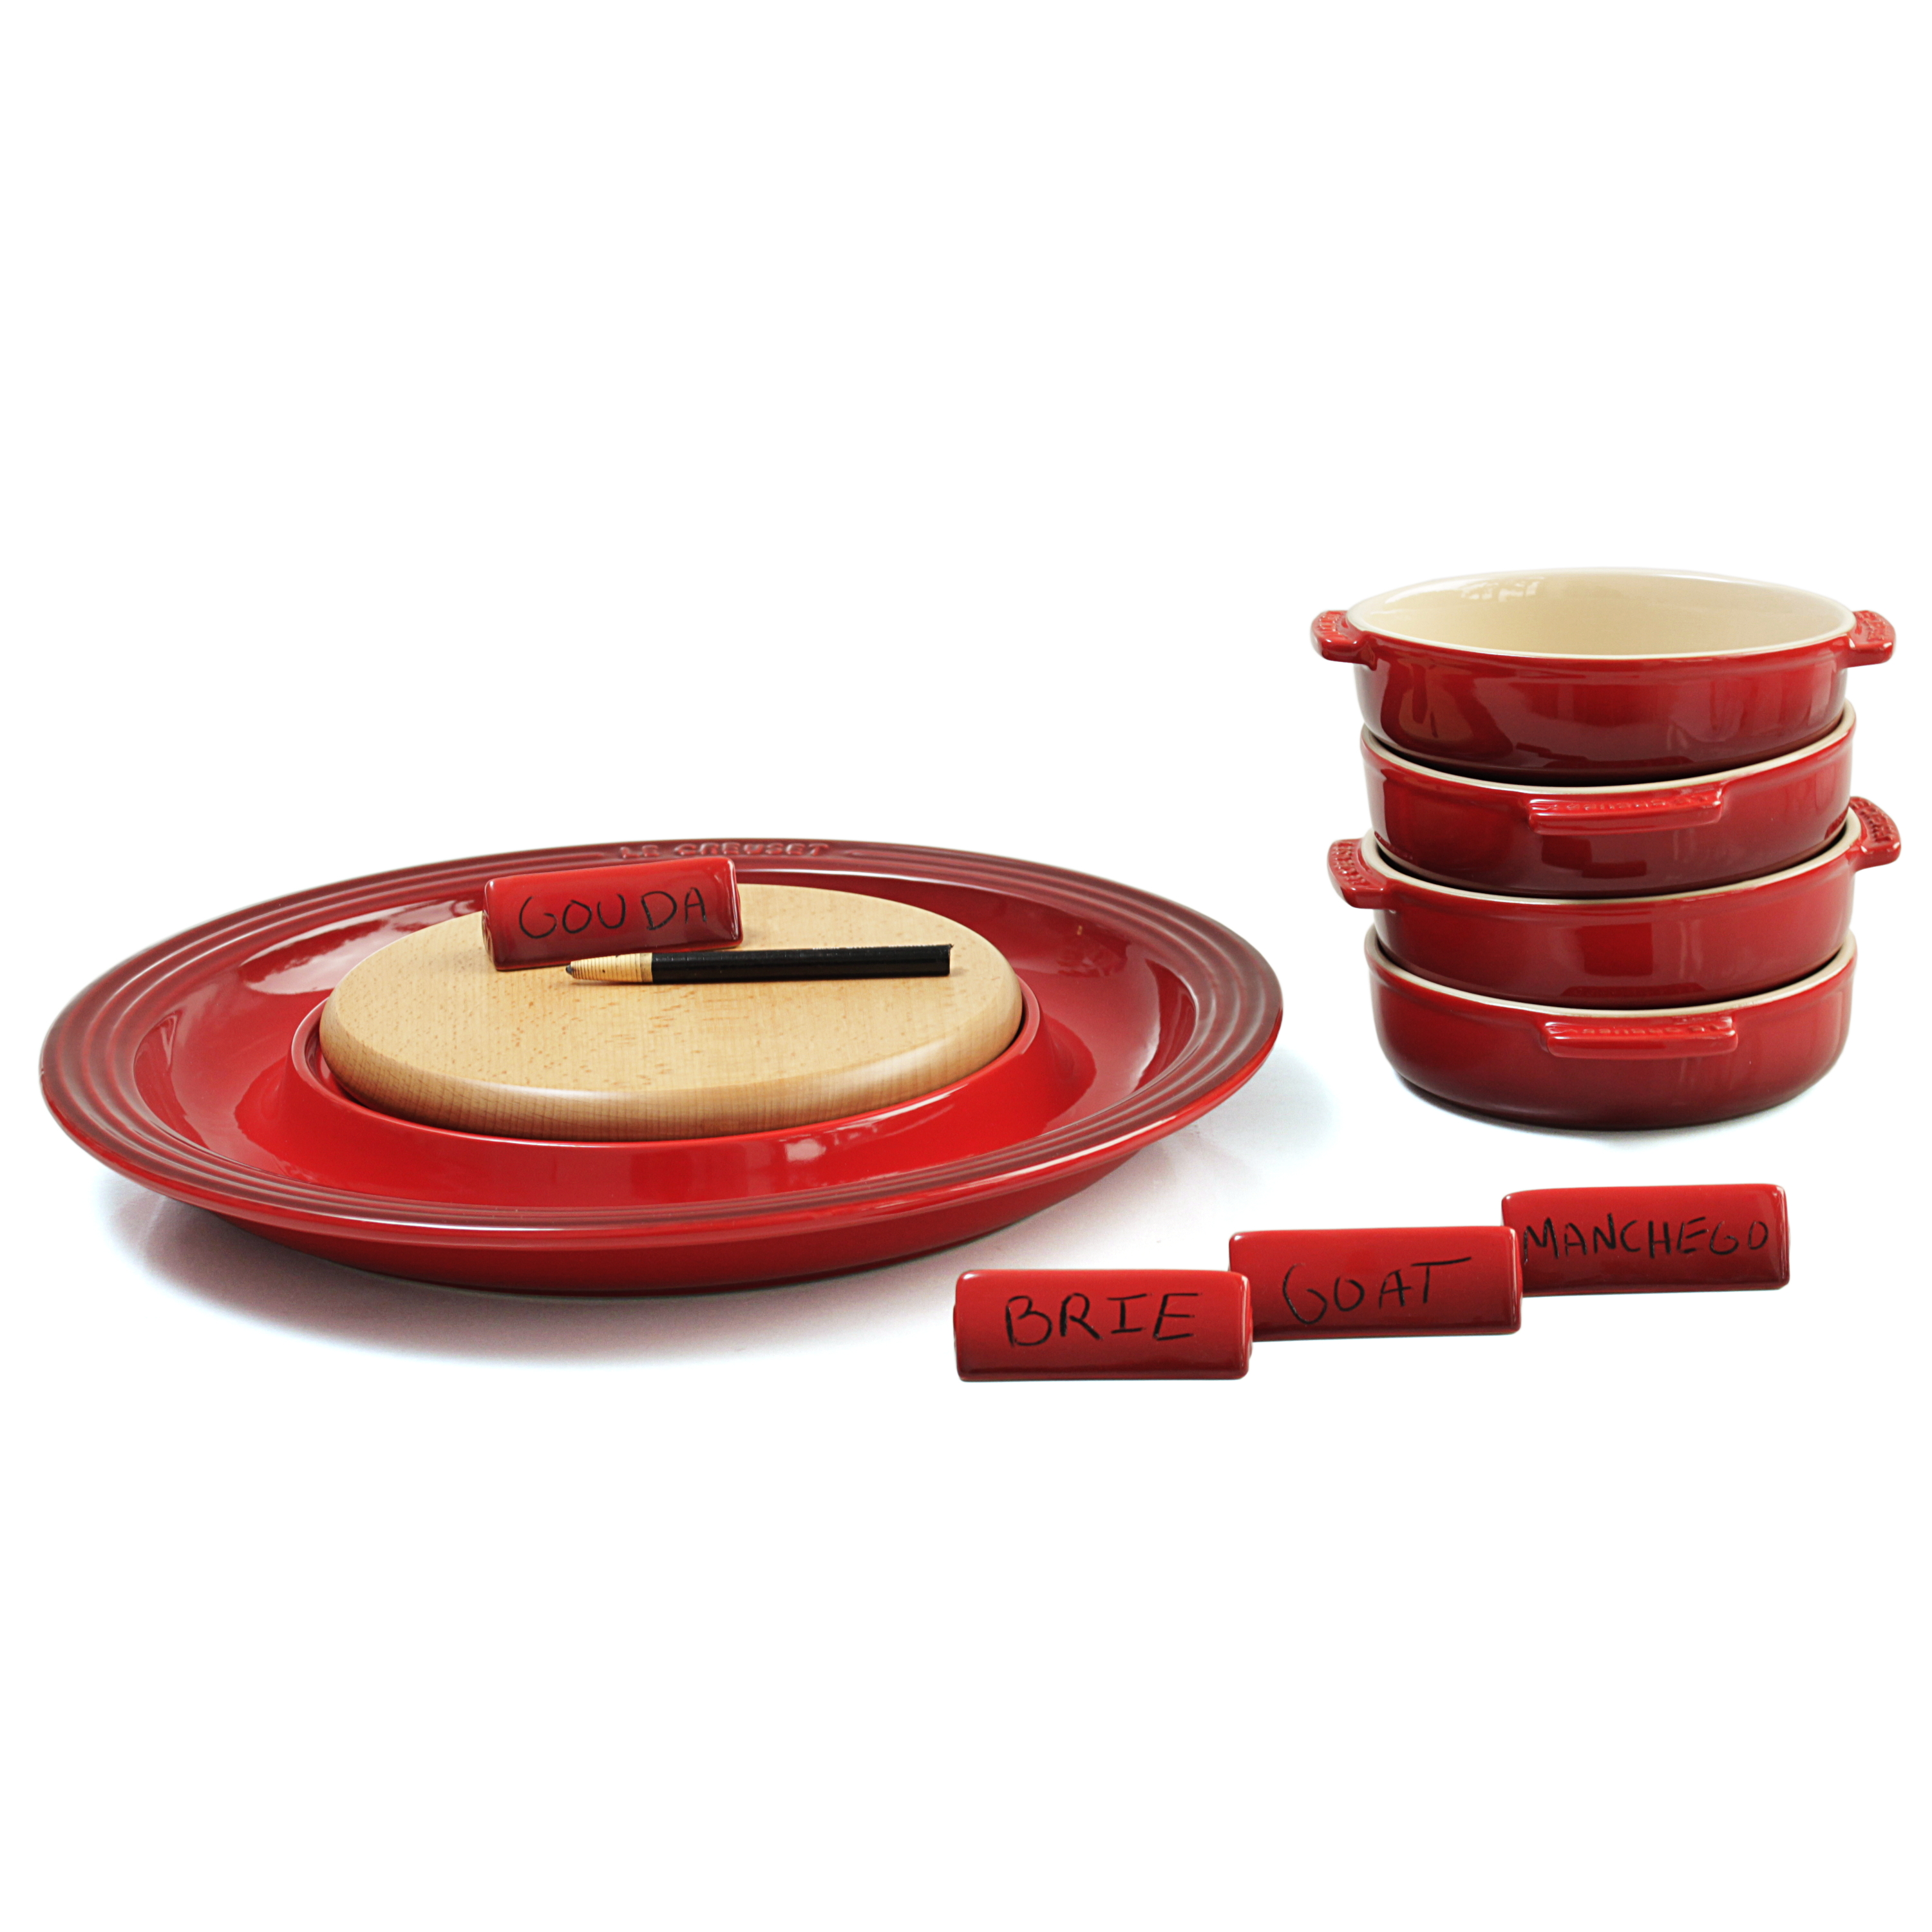 Le Creuset Cherry Stoneware Cheese Serving and 4 Piece Tapas Dish Set